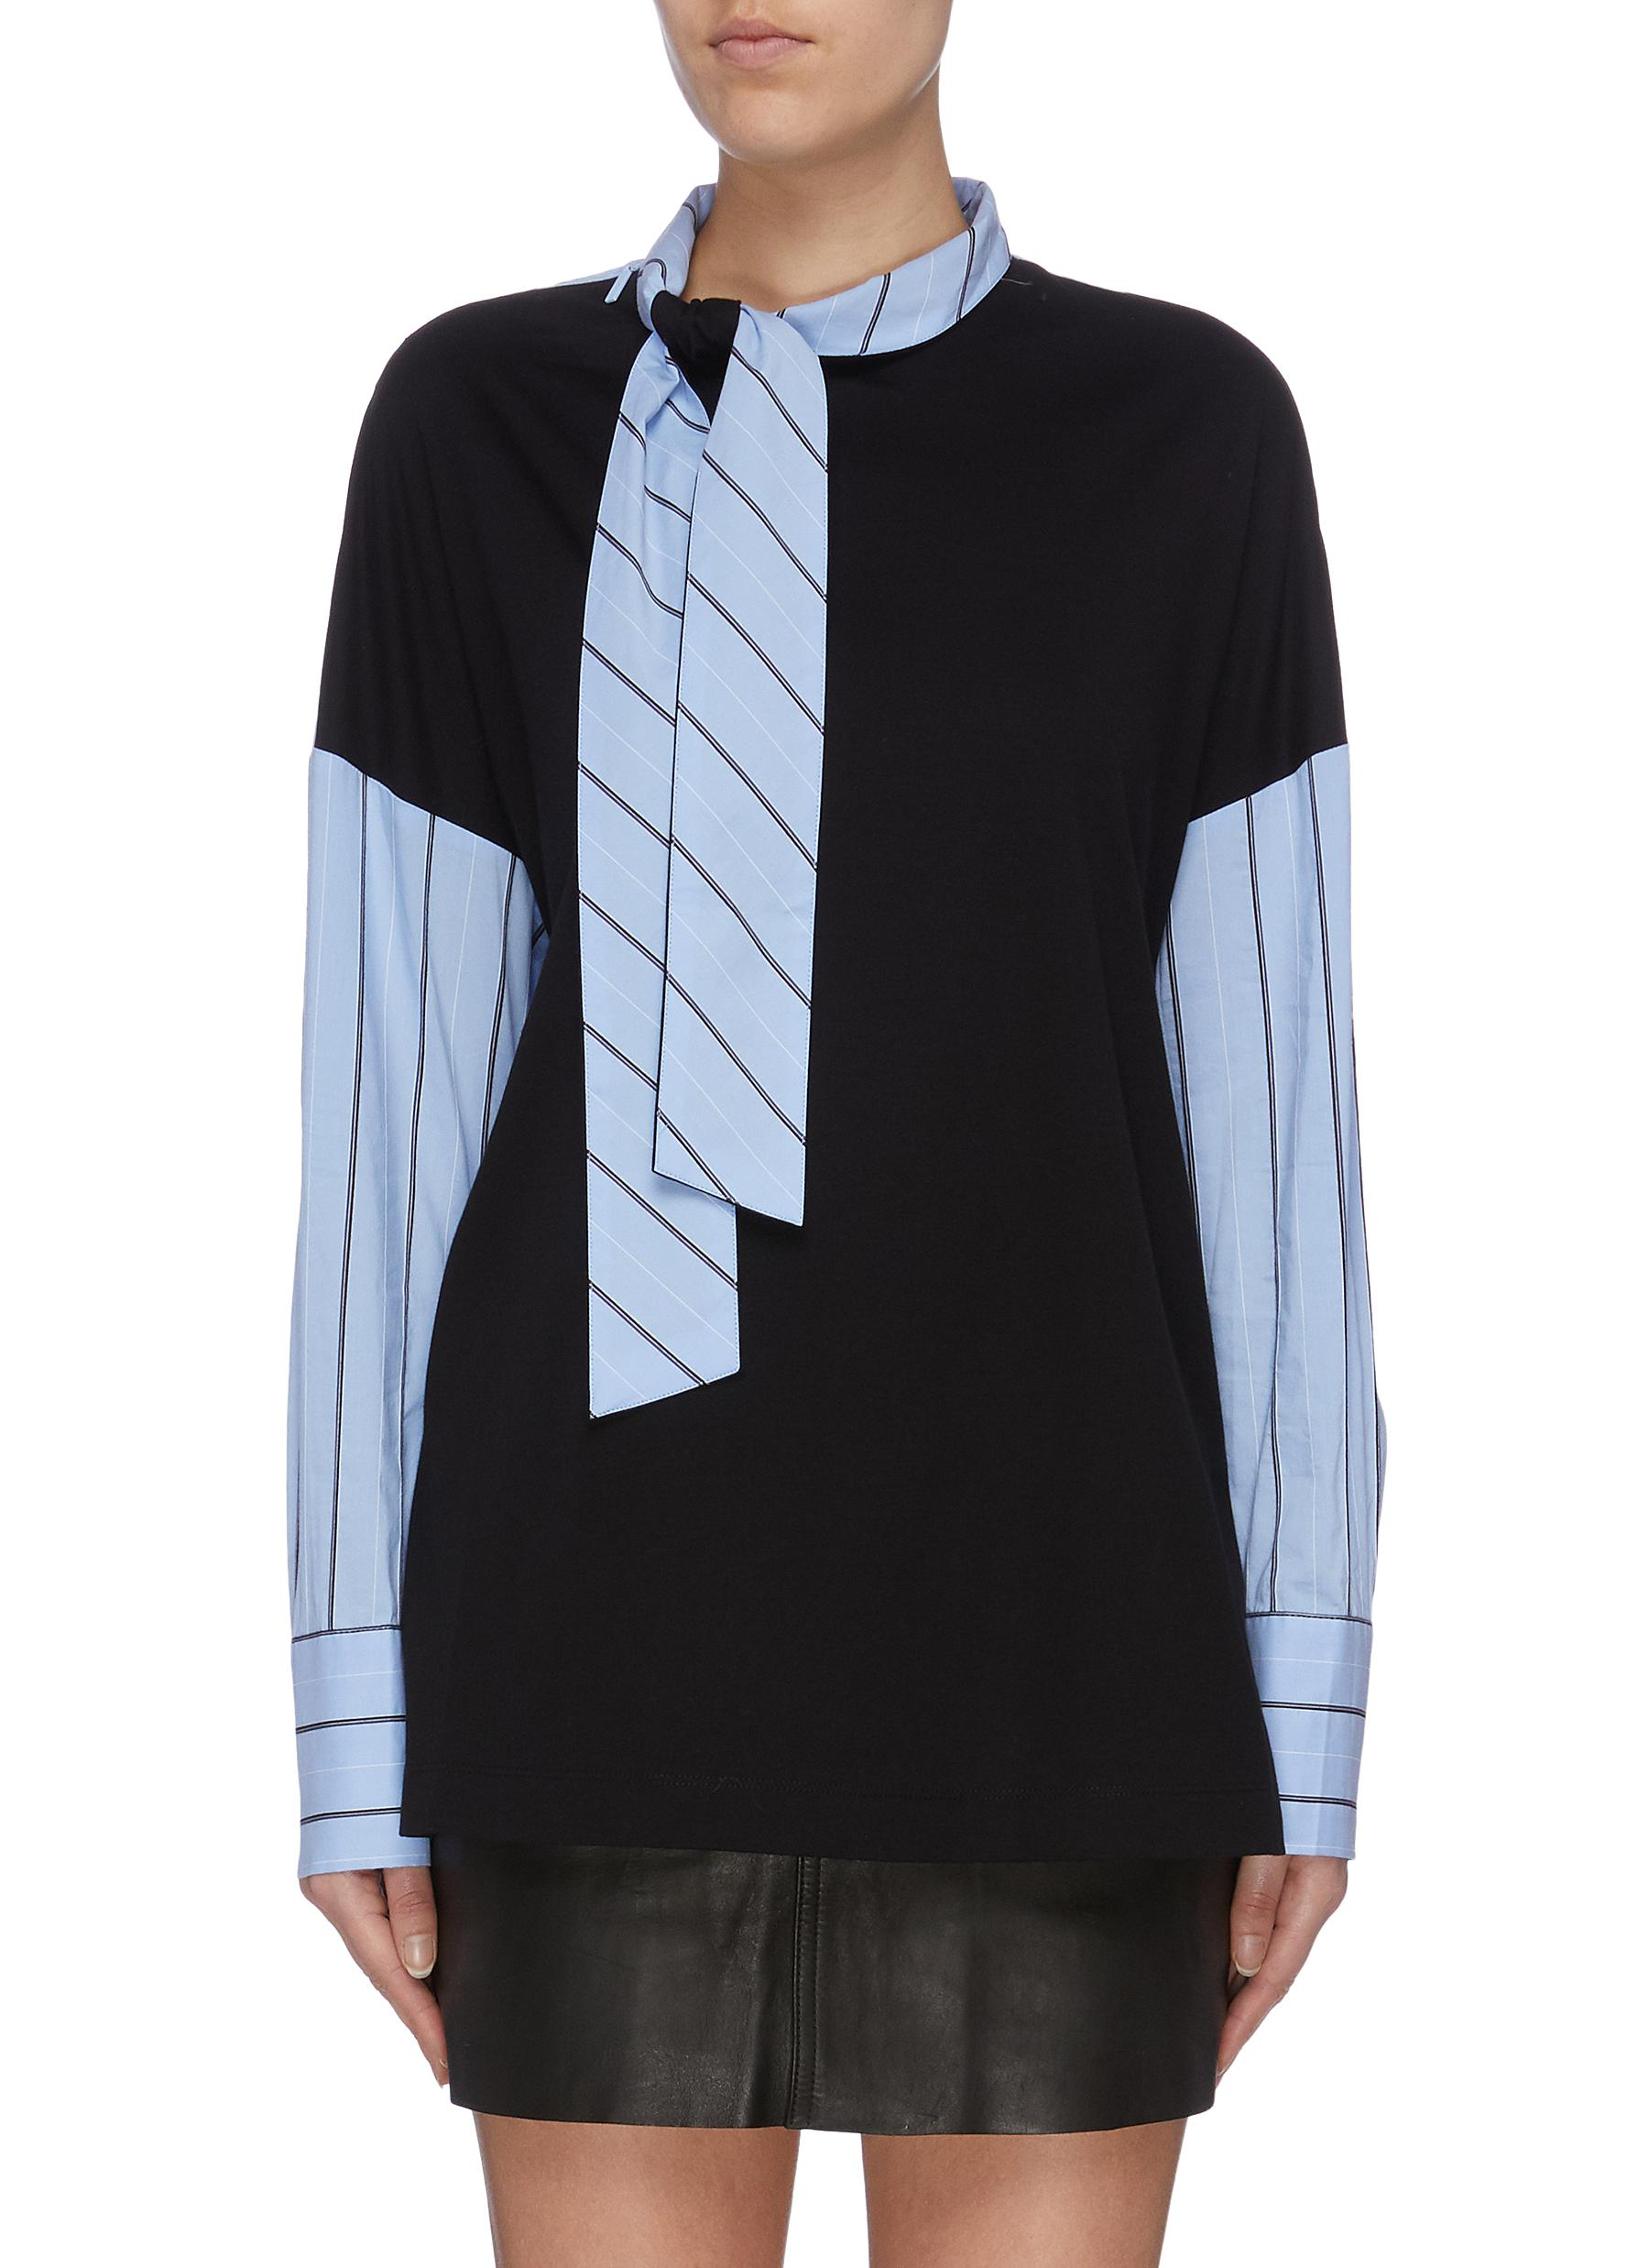 Sash tie neck colourblock stripe shirt by Tibi